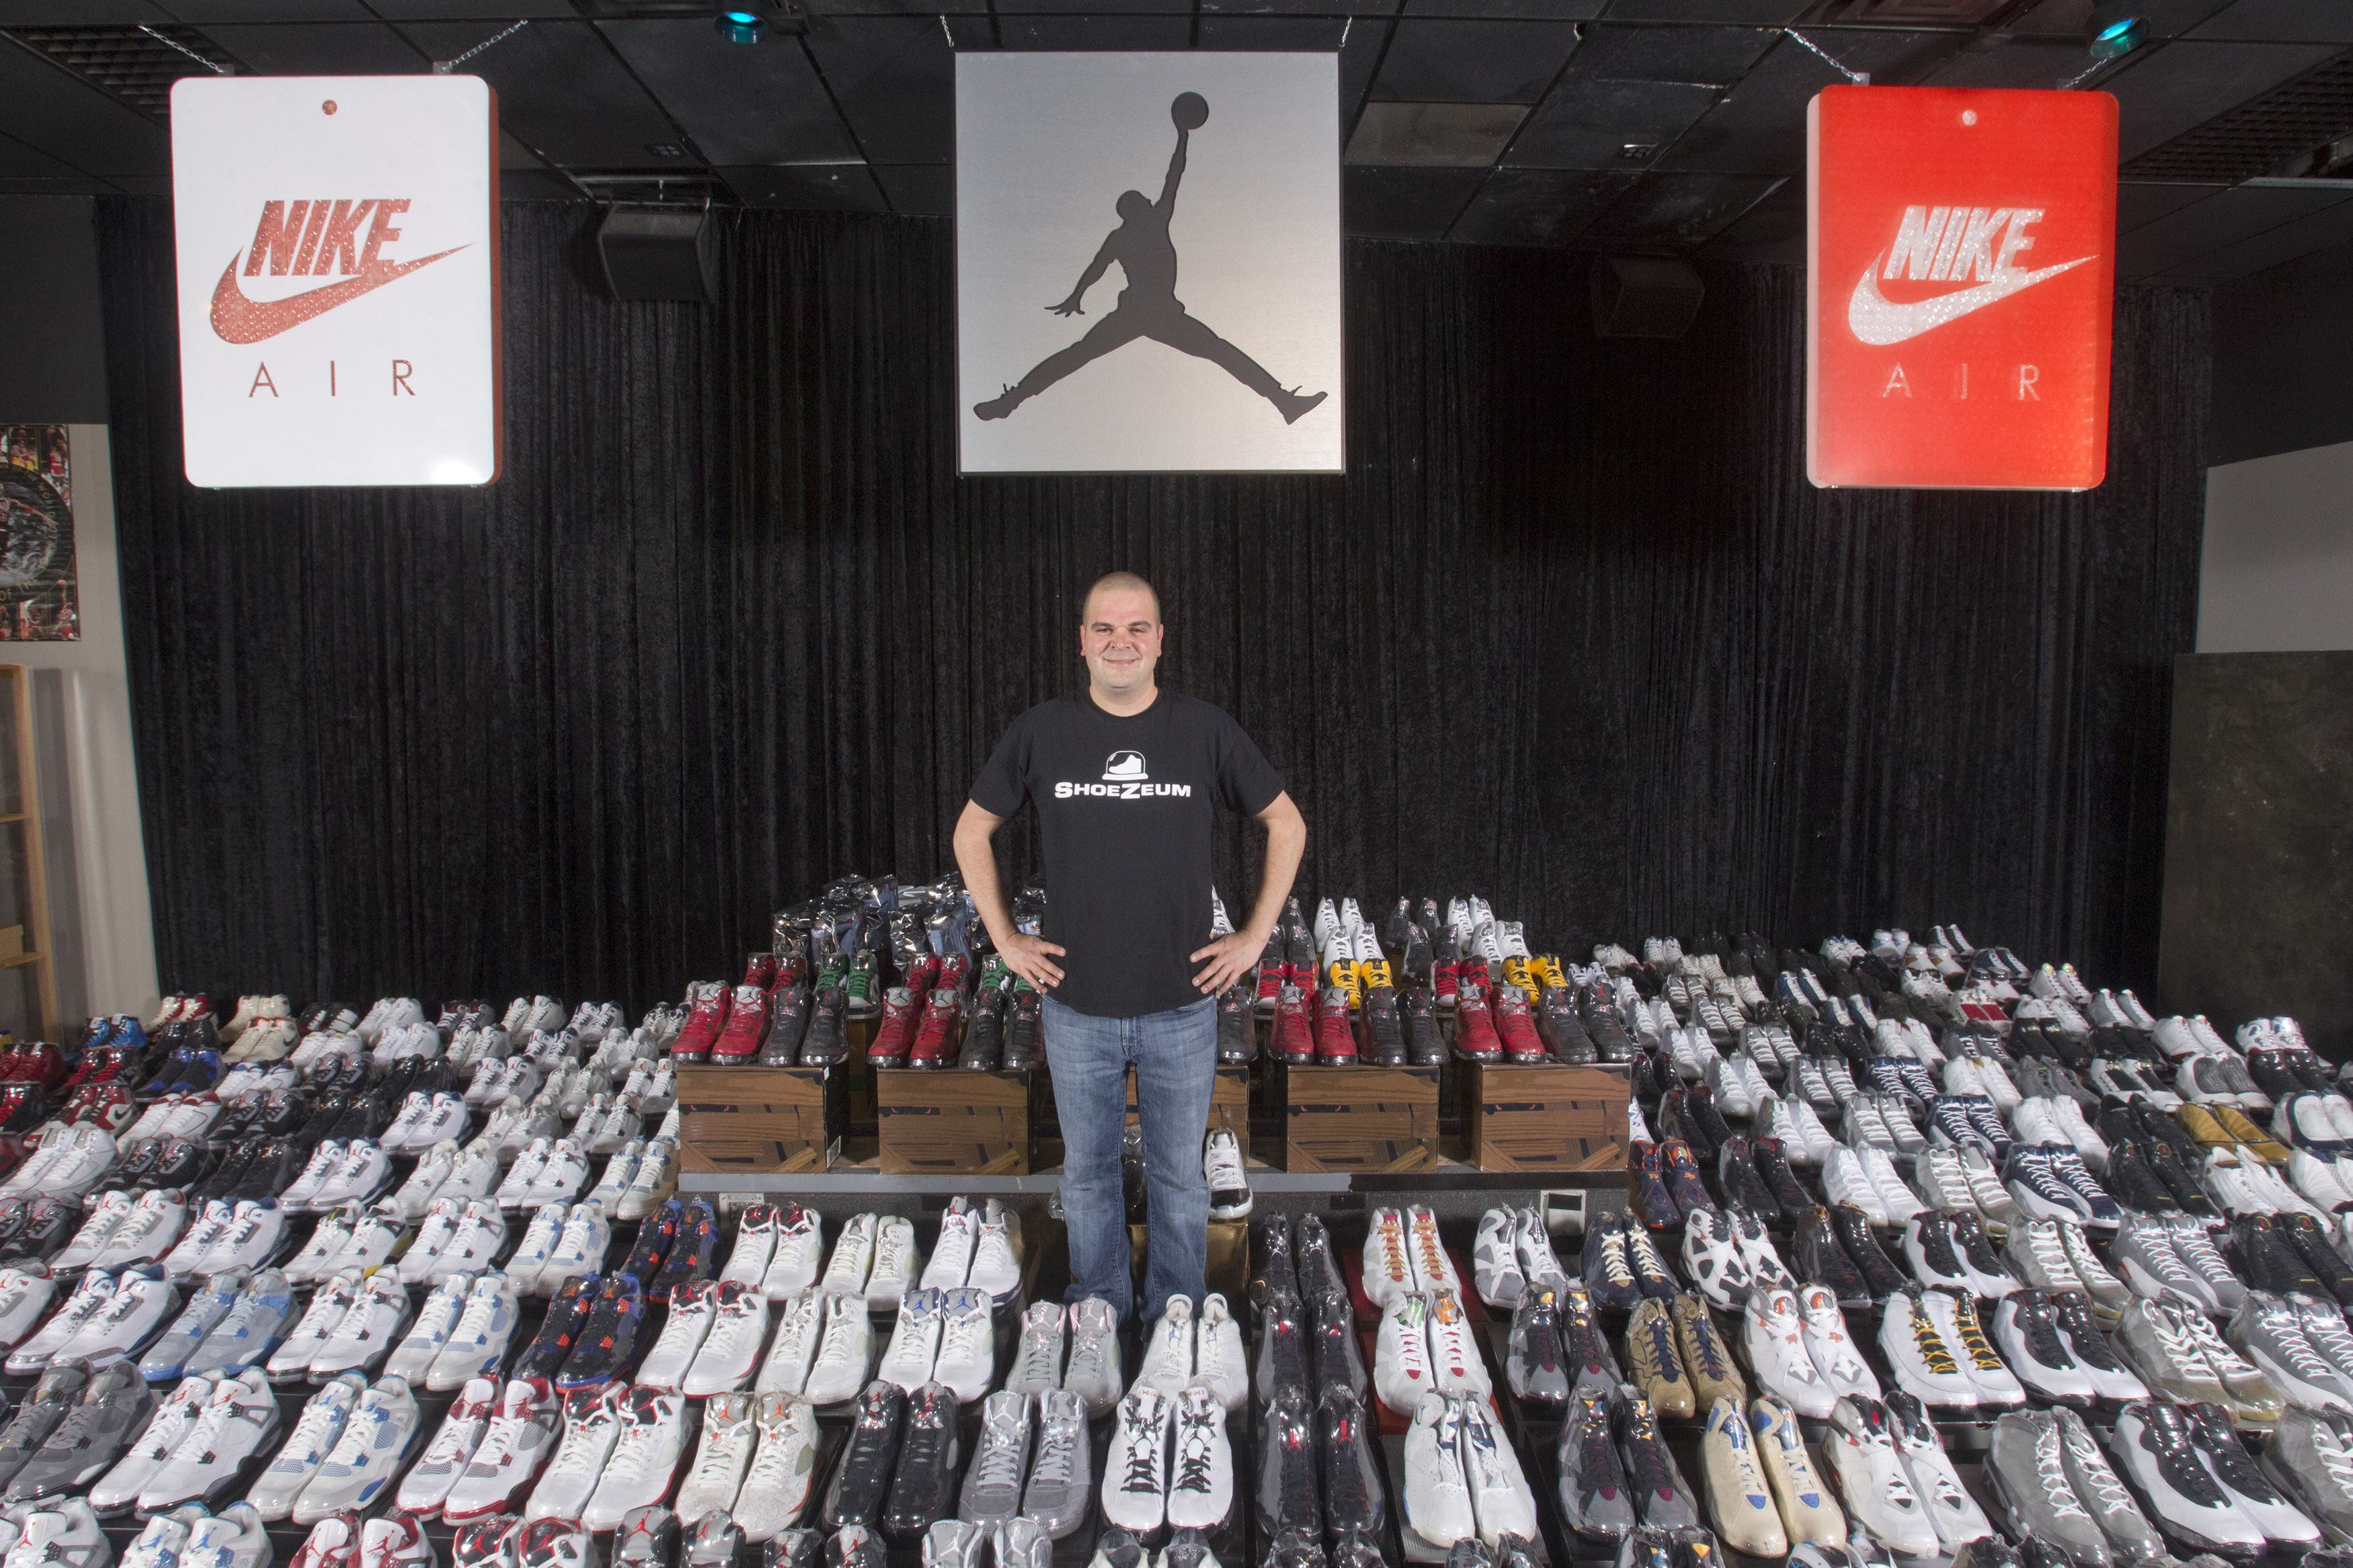 "Jordan Michael Geller poses with his collection of the Nike Air Jordan Retro line at the ""ShoeZeum"" in downtown Las Vegas, Nevada September 25, 2012. Record keepers at the Guinness Book of World Records recently certified that Geller's Shoezeum, a shrine to Nike that he says includes one of every model of Air Jordans ever made, holds the record for the world's largest collection of sneakers, with more than 2,500 pairs, all but eight of which are Nikes. Nike did not respond to calls for comment. Picture taken September 25, 2012. REUTERS/Steve Marcus (UNITED STATES - Tags: SOCIETY) - RTR38IBH"